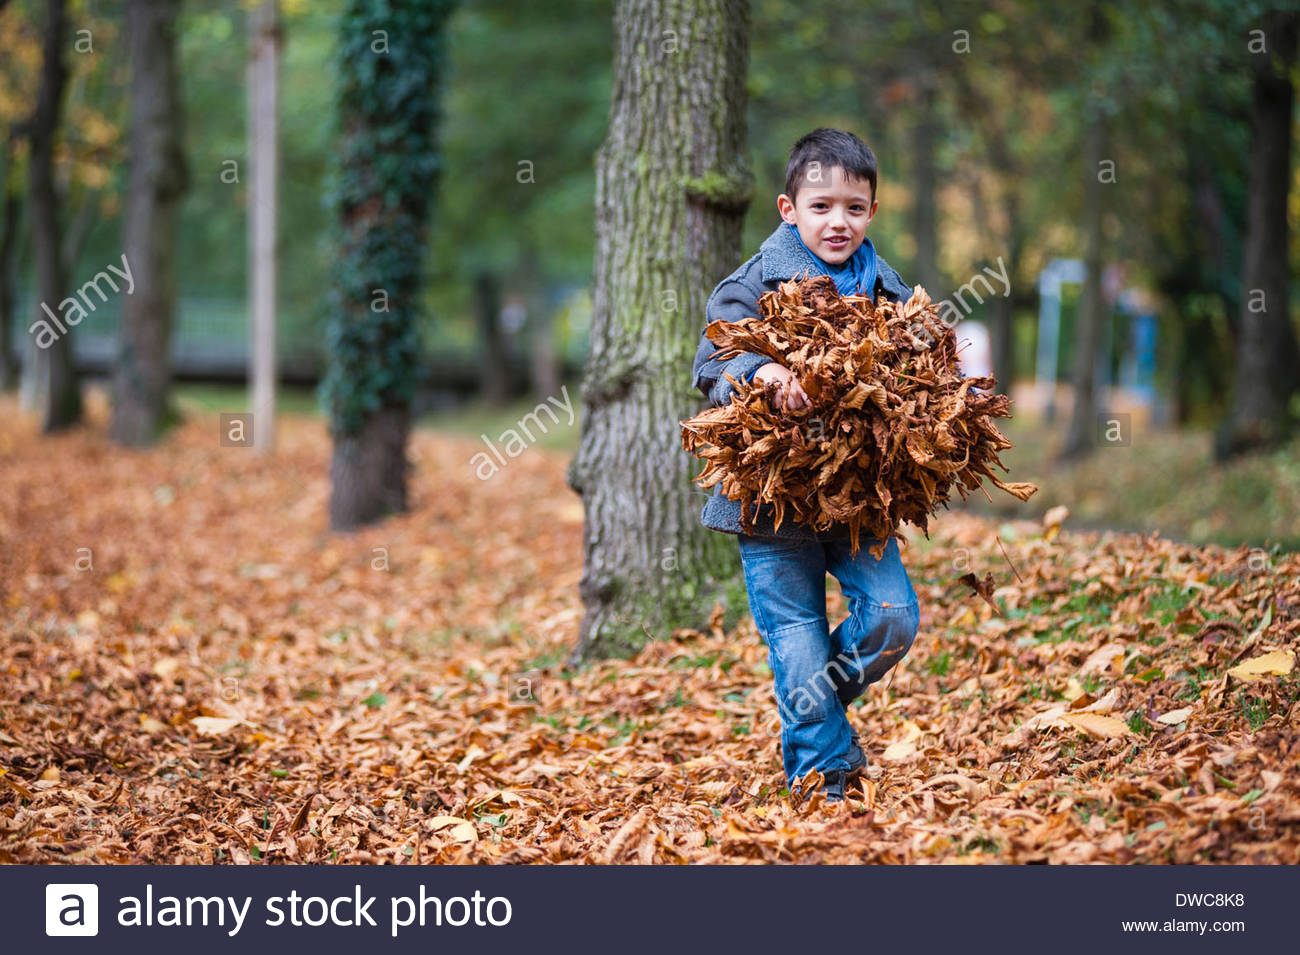 Young boy carrying bundle of autumn leaves in park - Stock Image